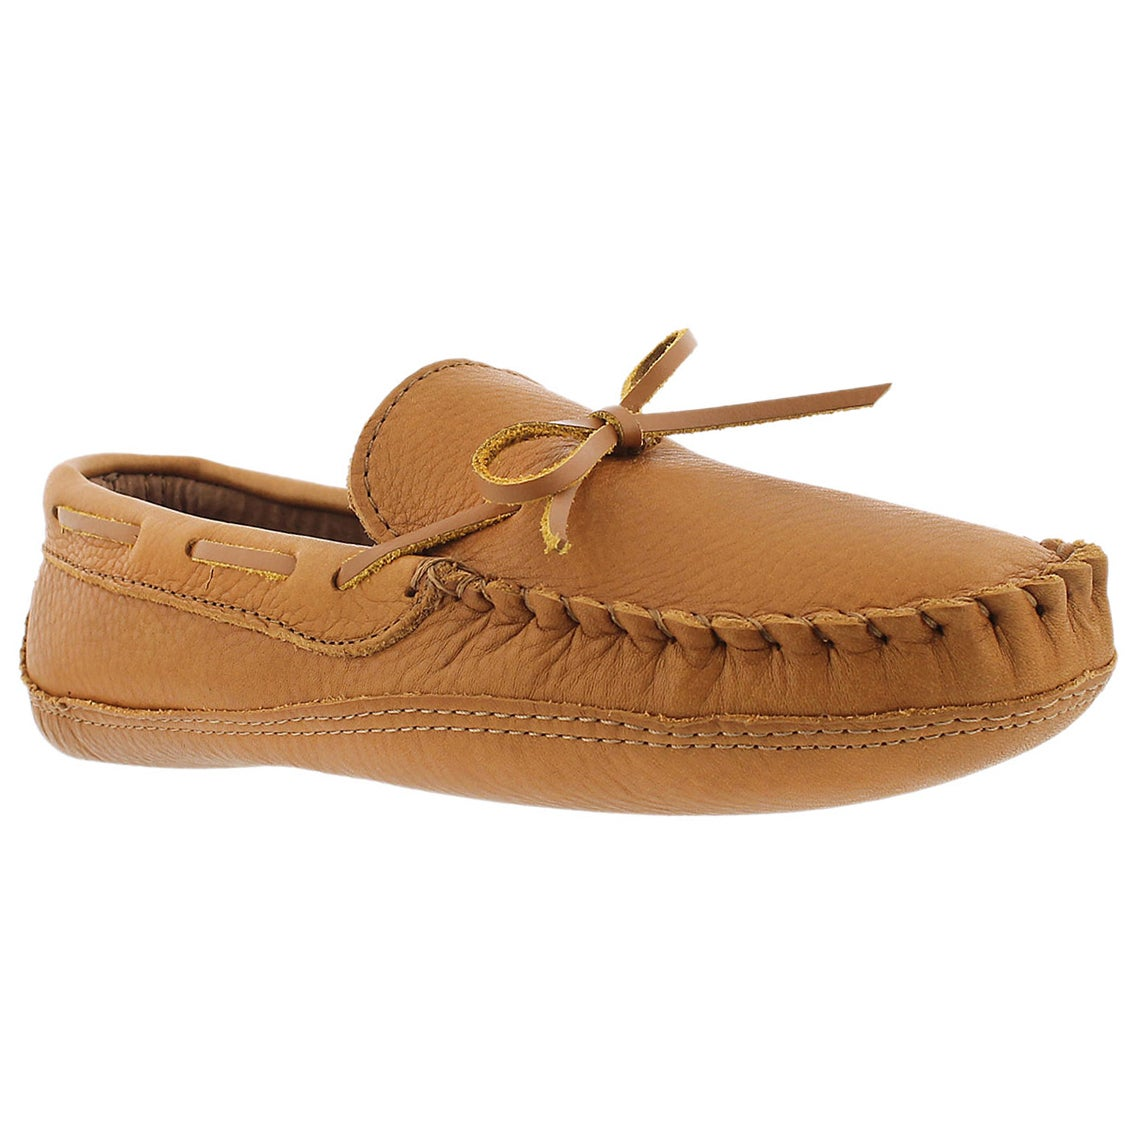 Men's 1471 cork leather moccasins